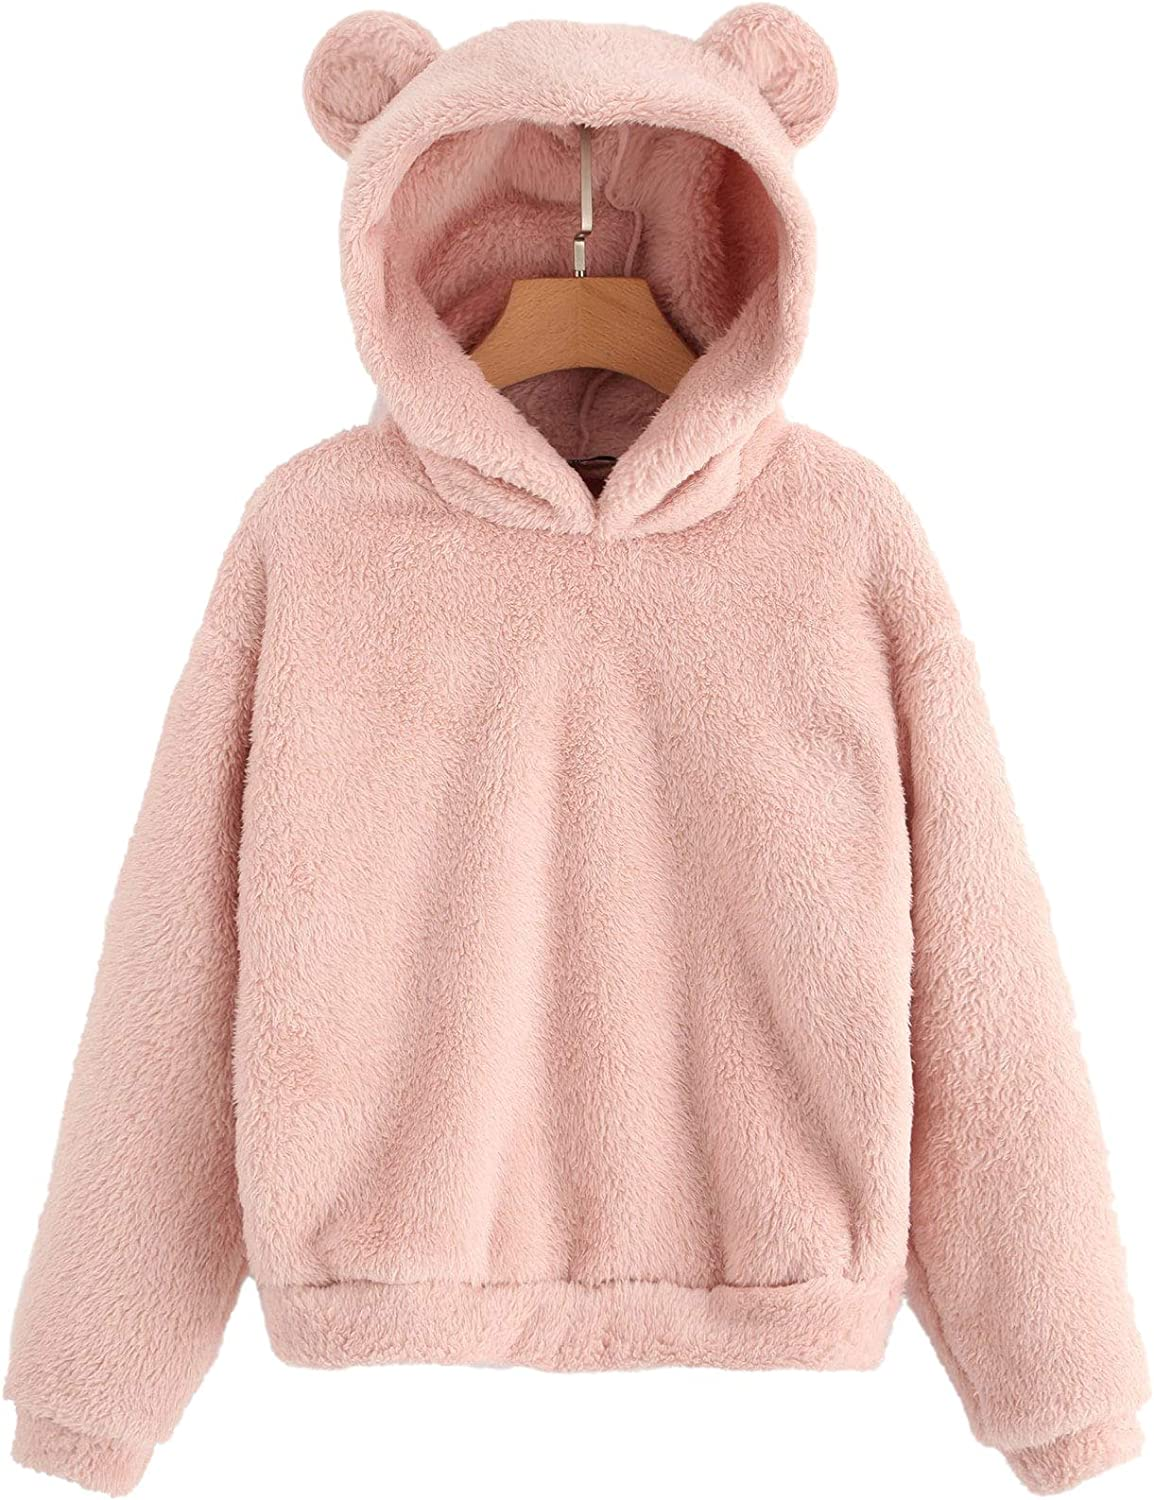 Free shipping anywhere in the nation Special price for a limited time SheIn Women's Casual Cute Teddy Long Pullover Bear Fleece Sleeve